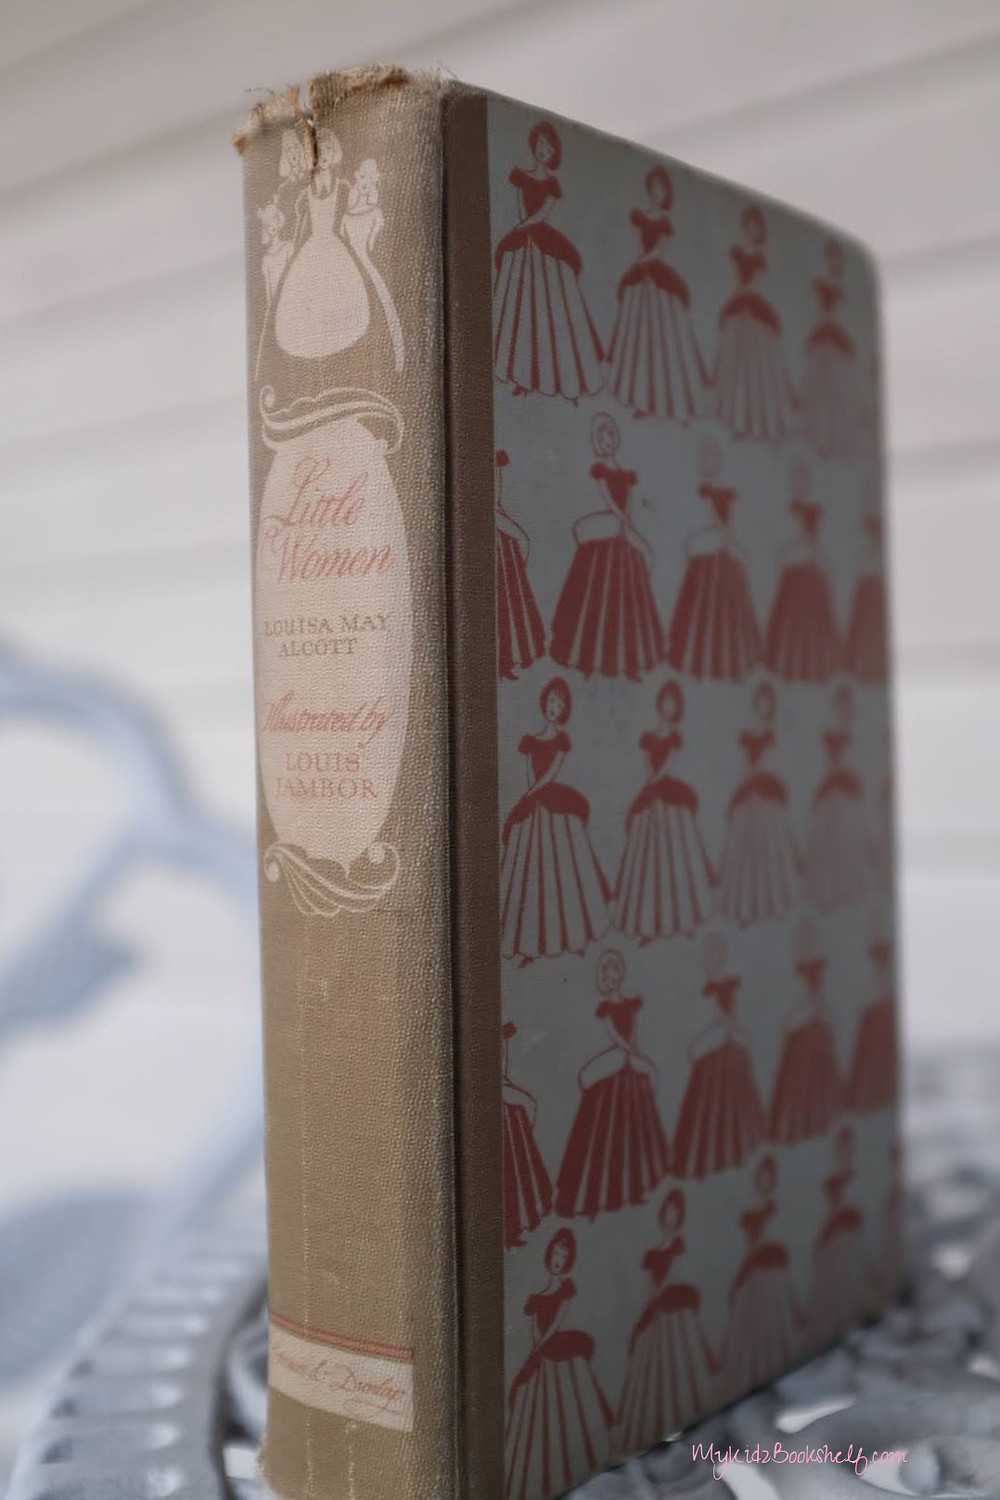 Old edition of Little Women by Louisa May Alcott